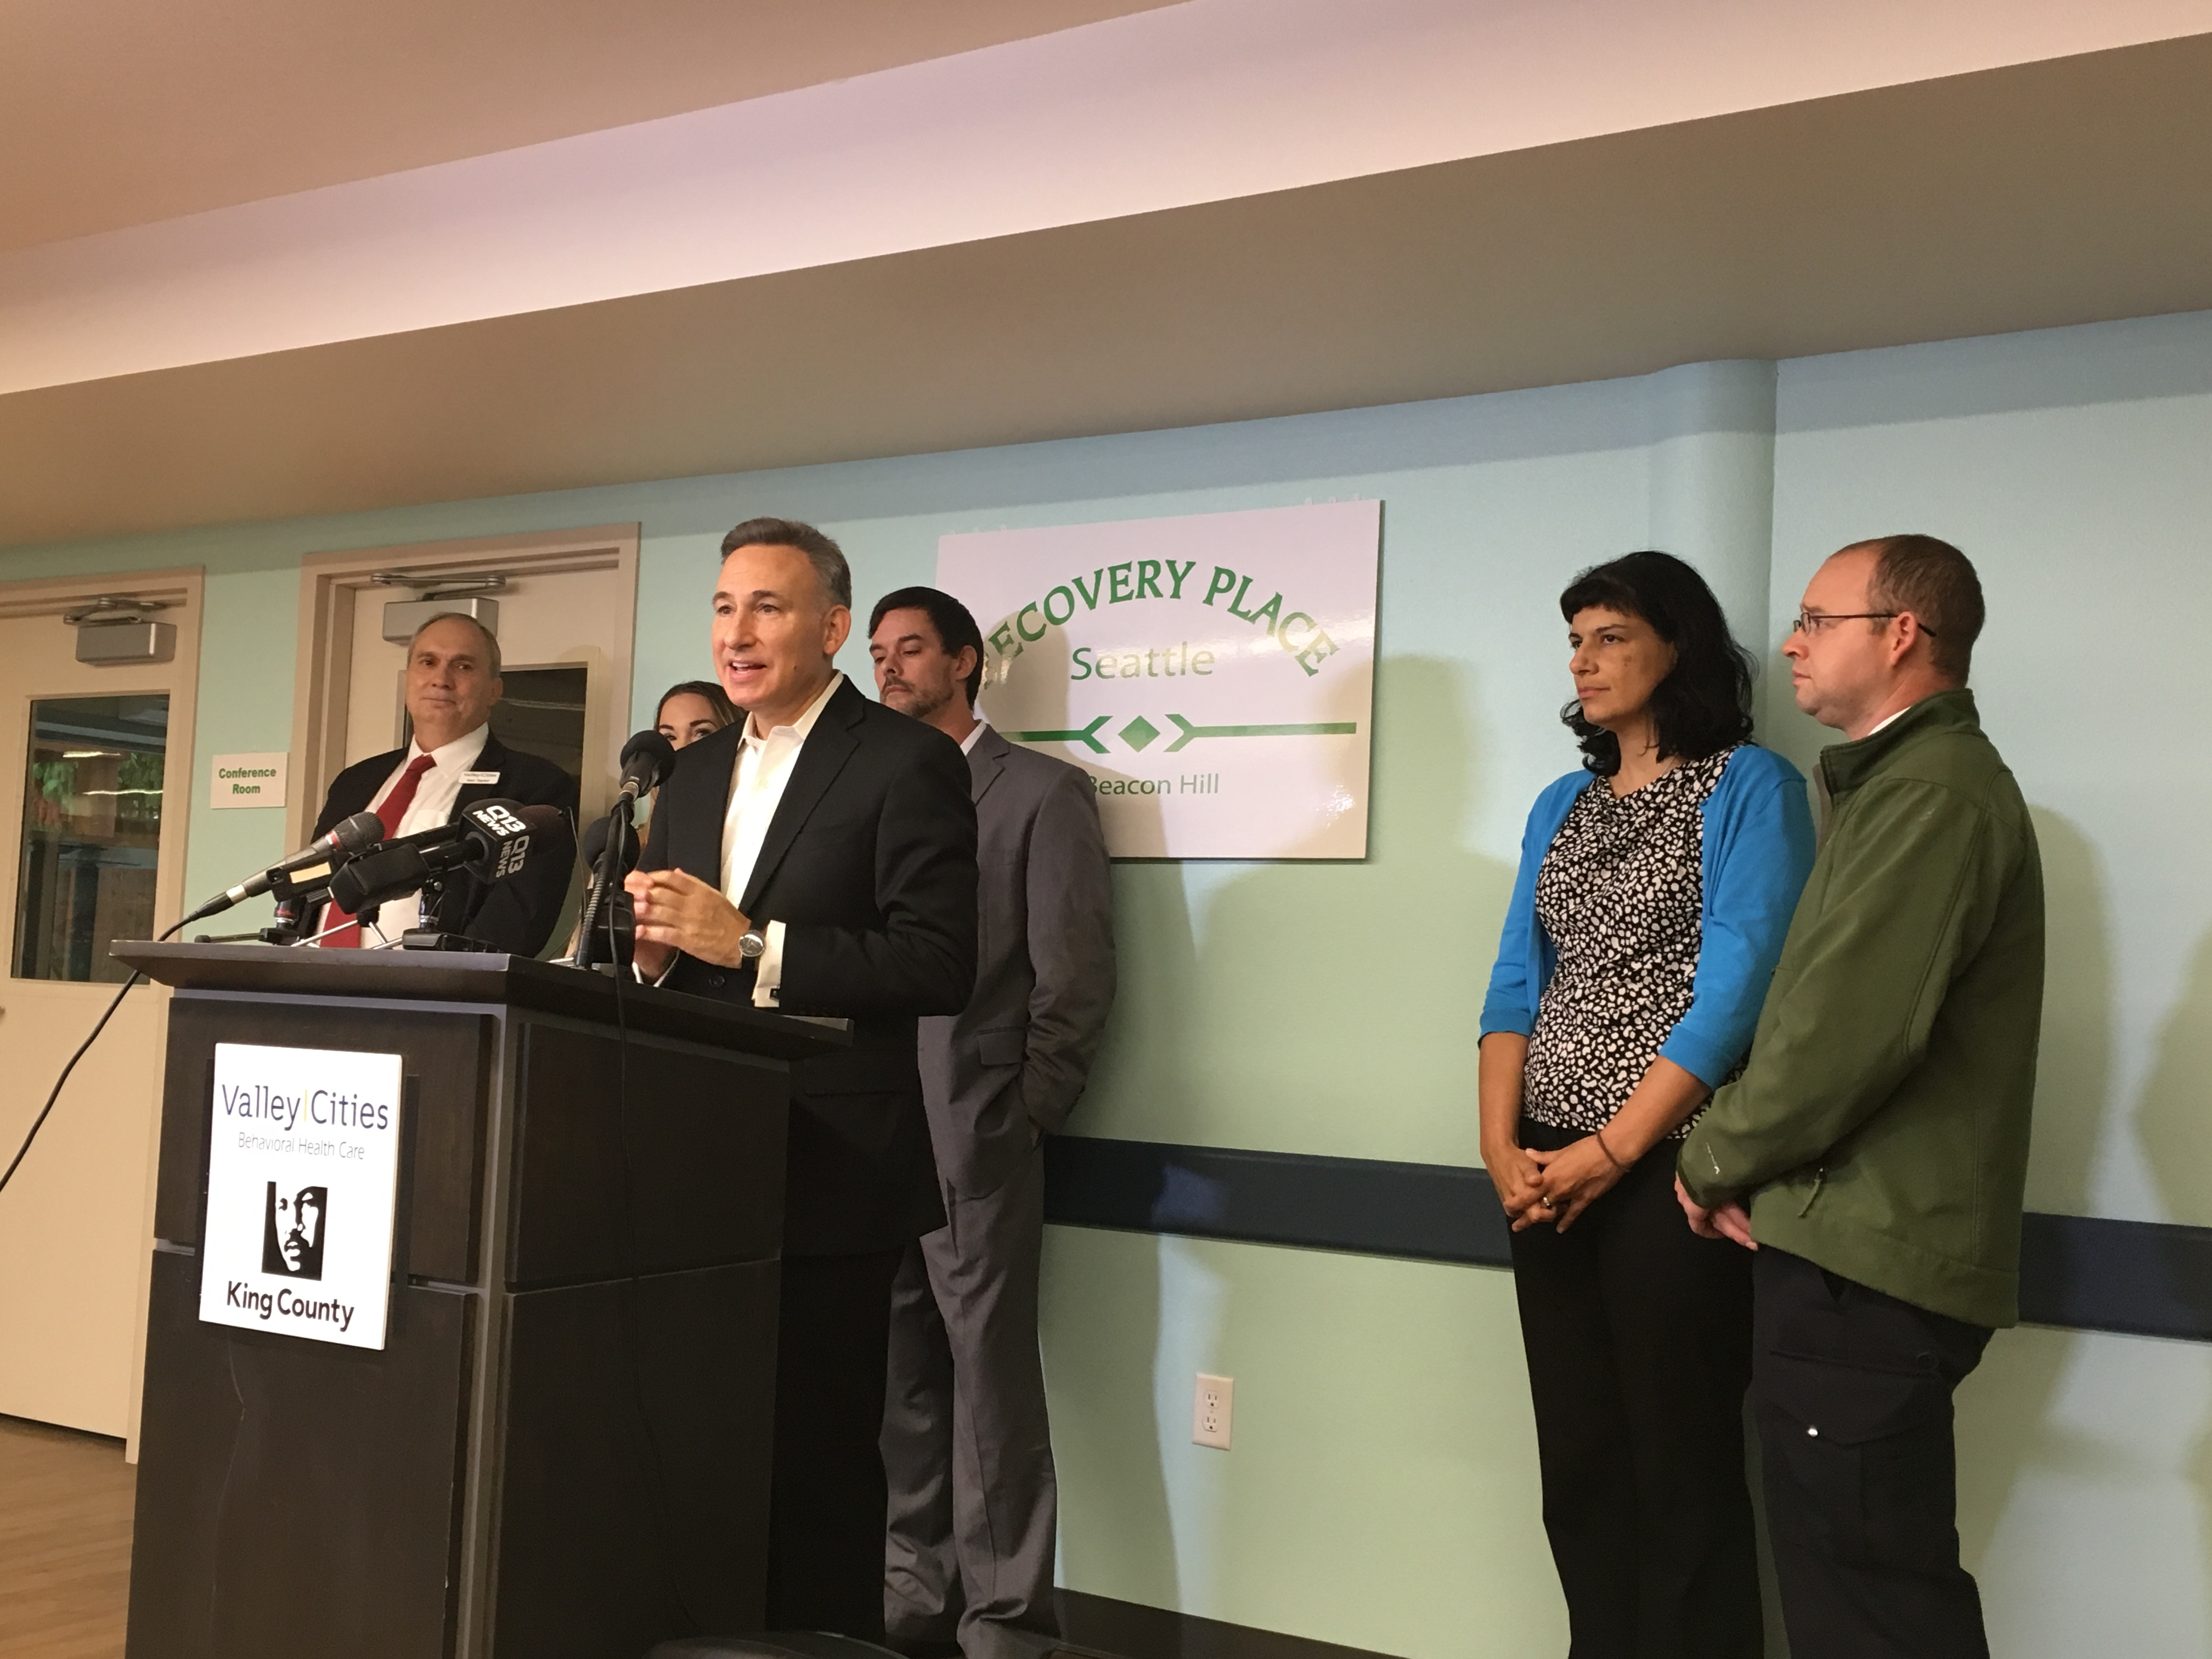 Image 1 Caption--King County Executive Dow Constantine delivers remarks at the open house Thursday.